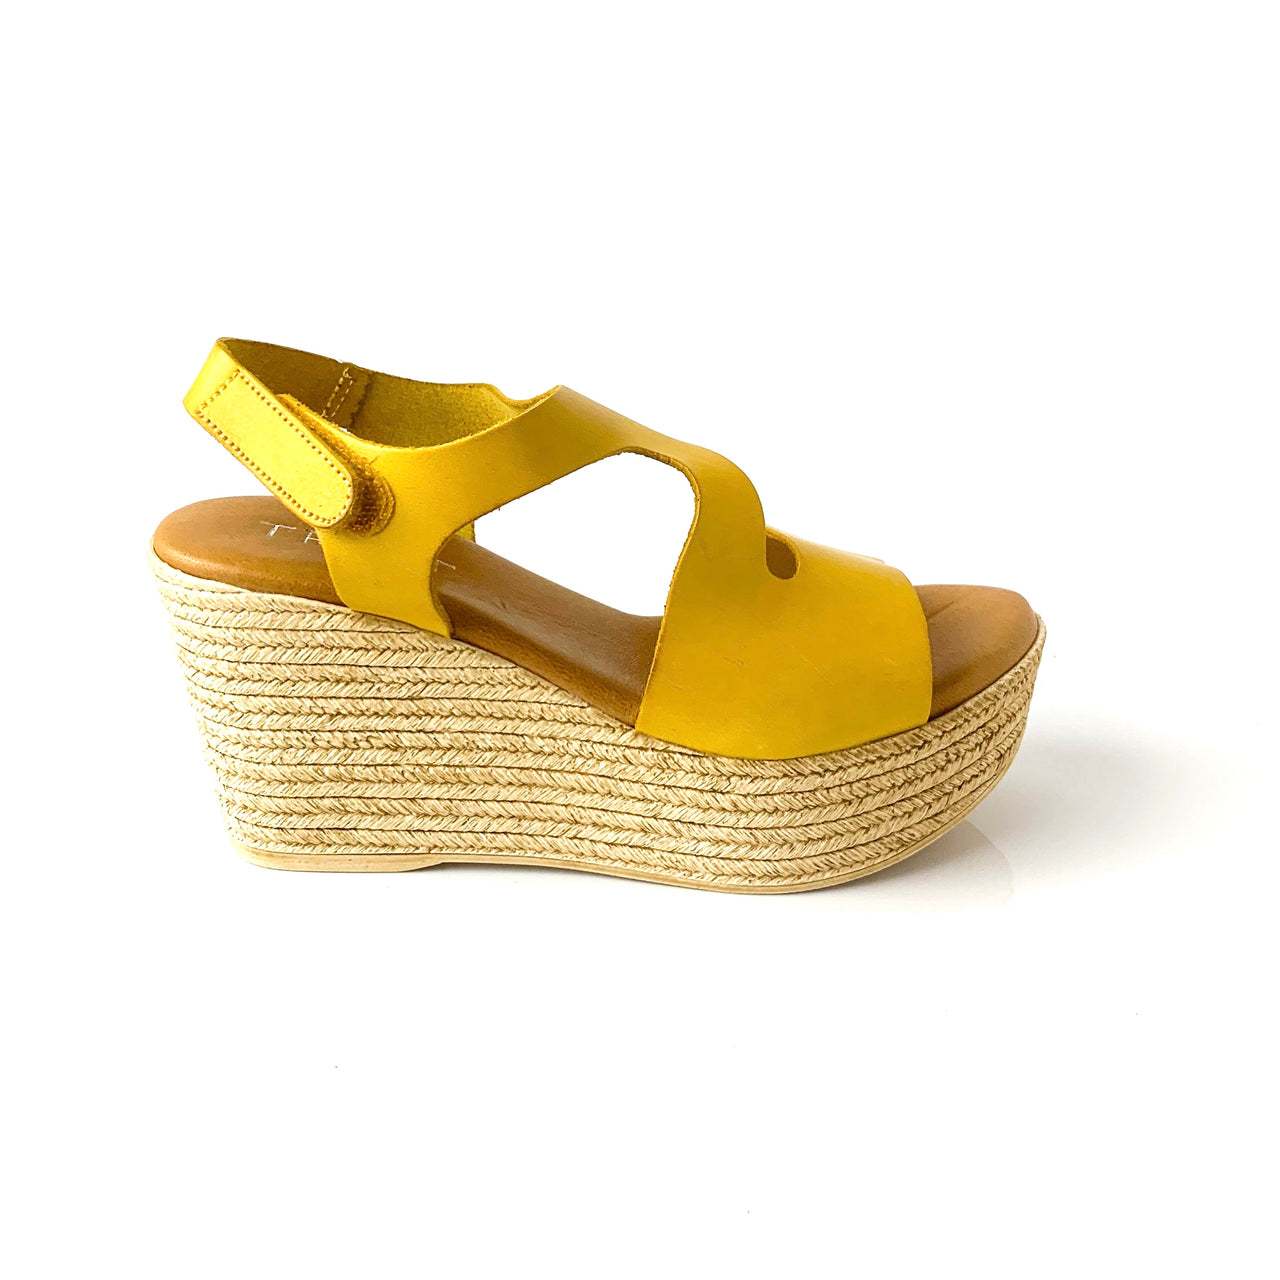 Arely | Yellow Platform Sandals - TrystShoes